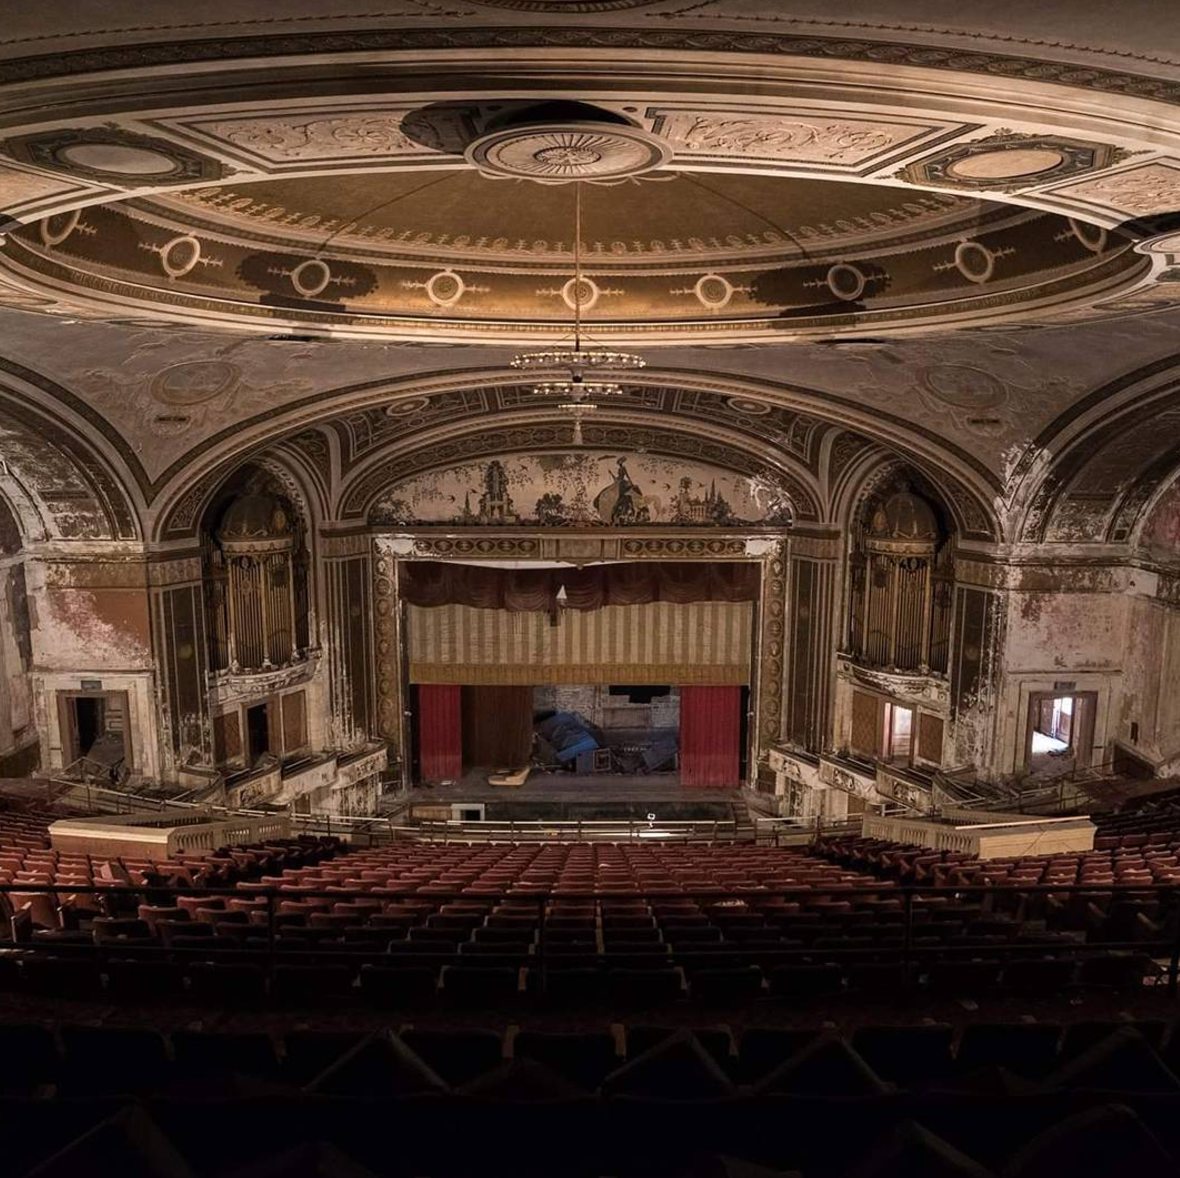 Abandoned Opera House Full Of Treasures From The Past